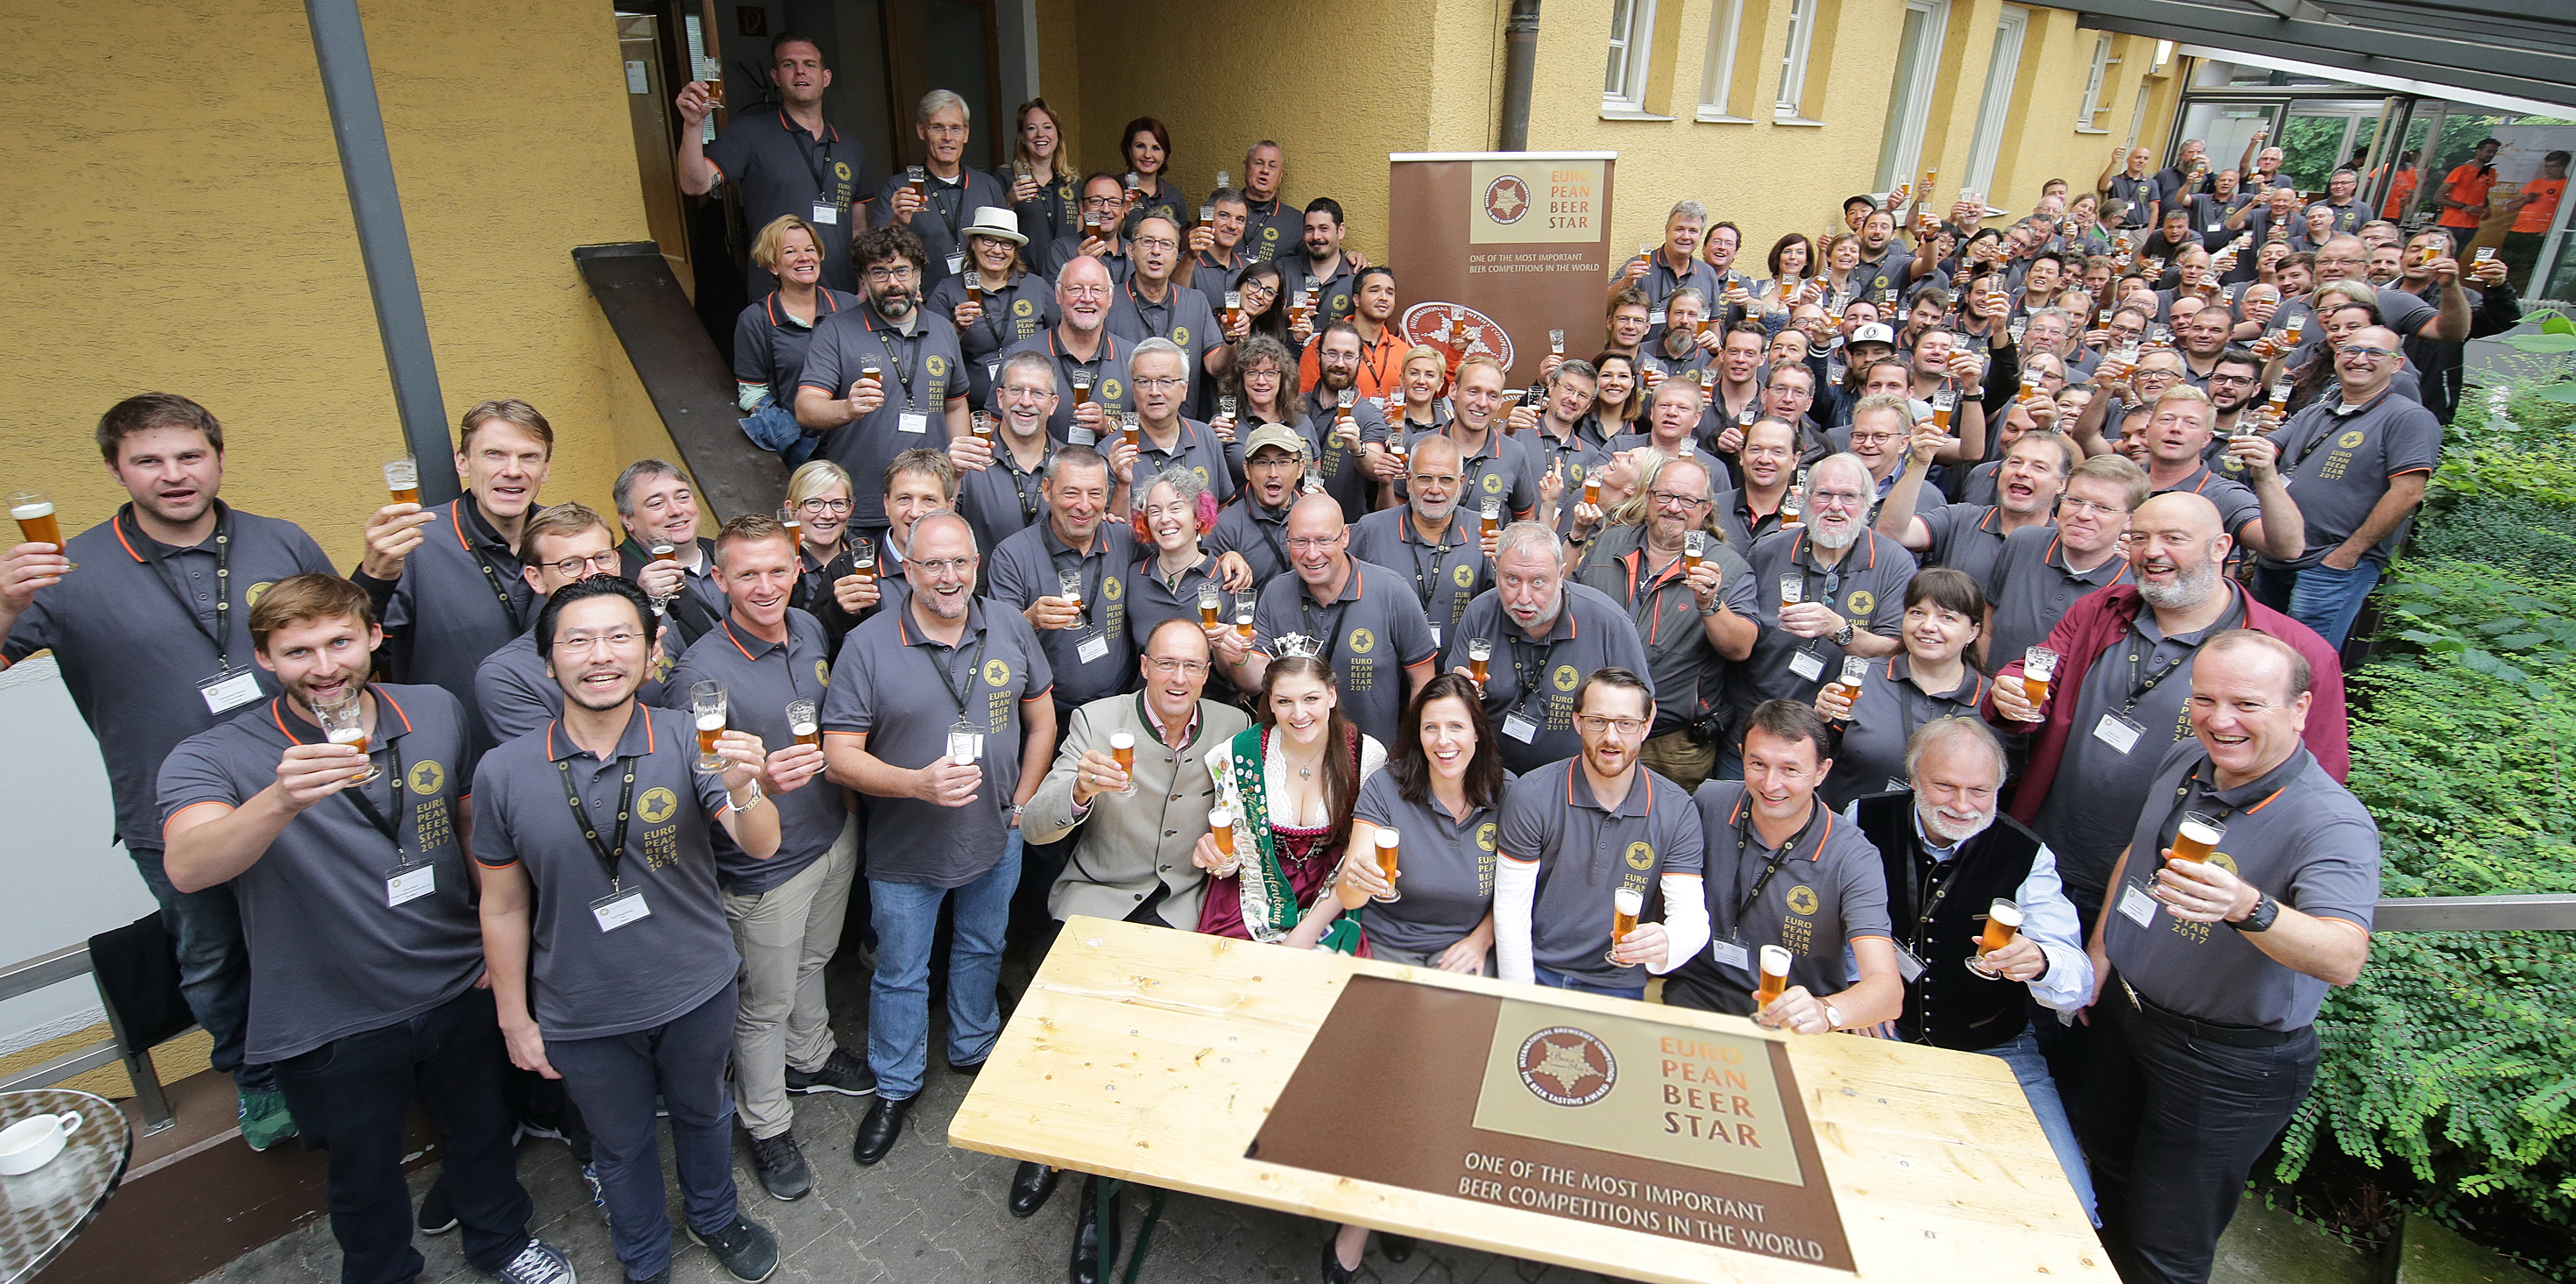 European Beer Star 2017